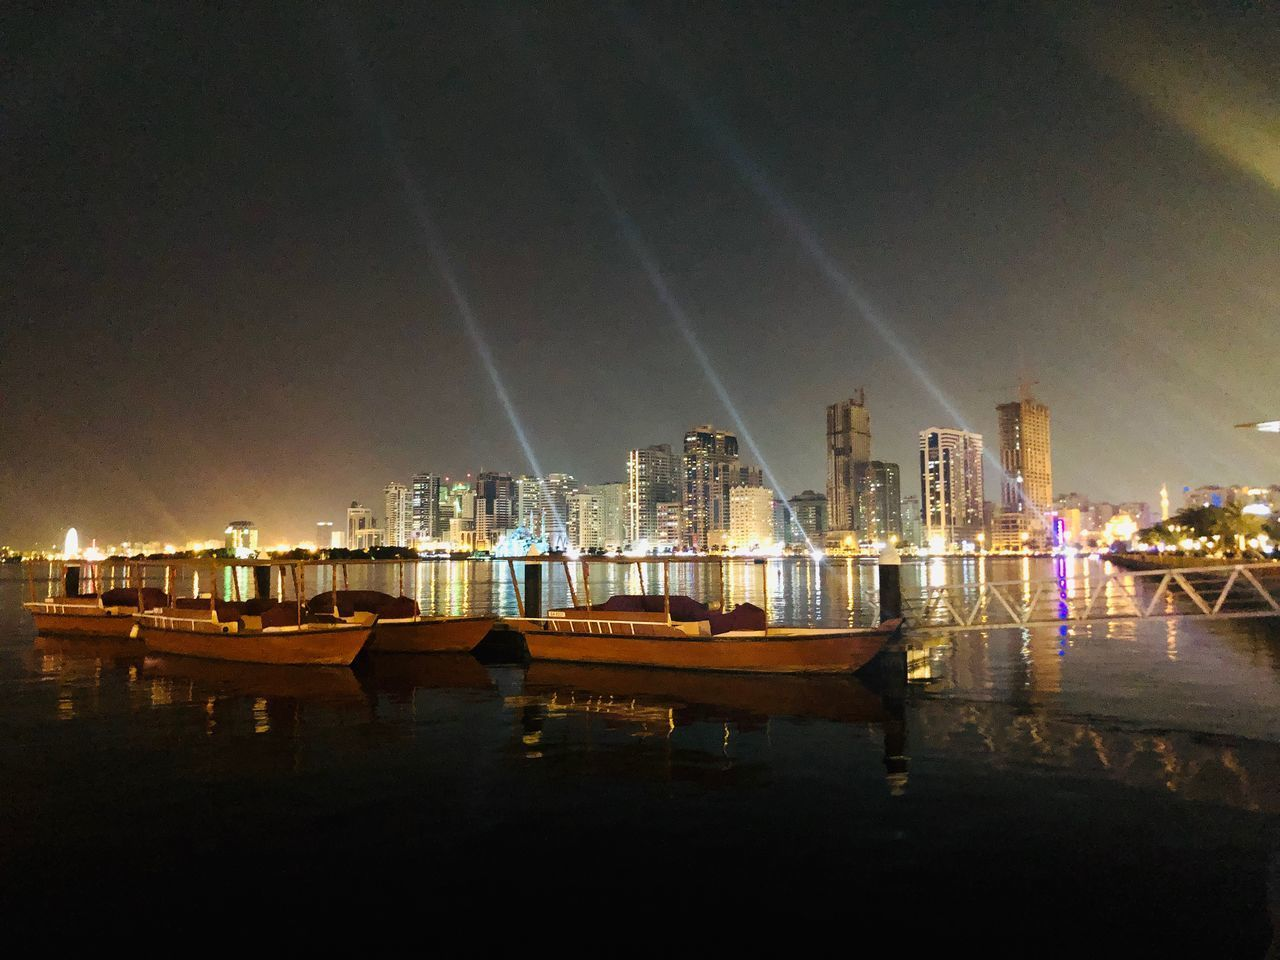 water, architecture, building exterior, built structure, illuminated, sky, night, city, no people, nautical vessel, reflection, nature, transportation, building, moored, sea, mode of transportation, outdoors, cityscape, light, marina, skyscraper, bay